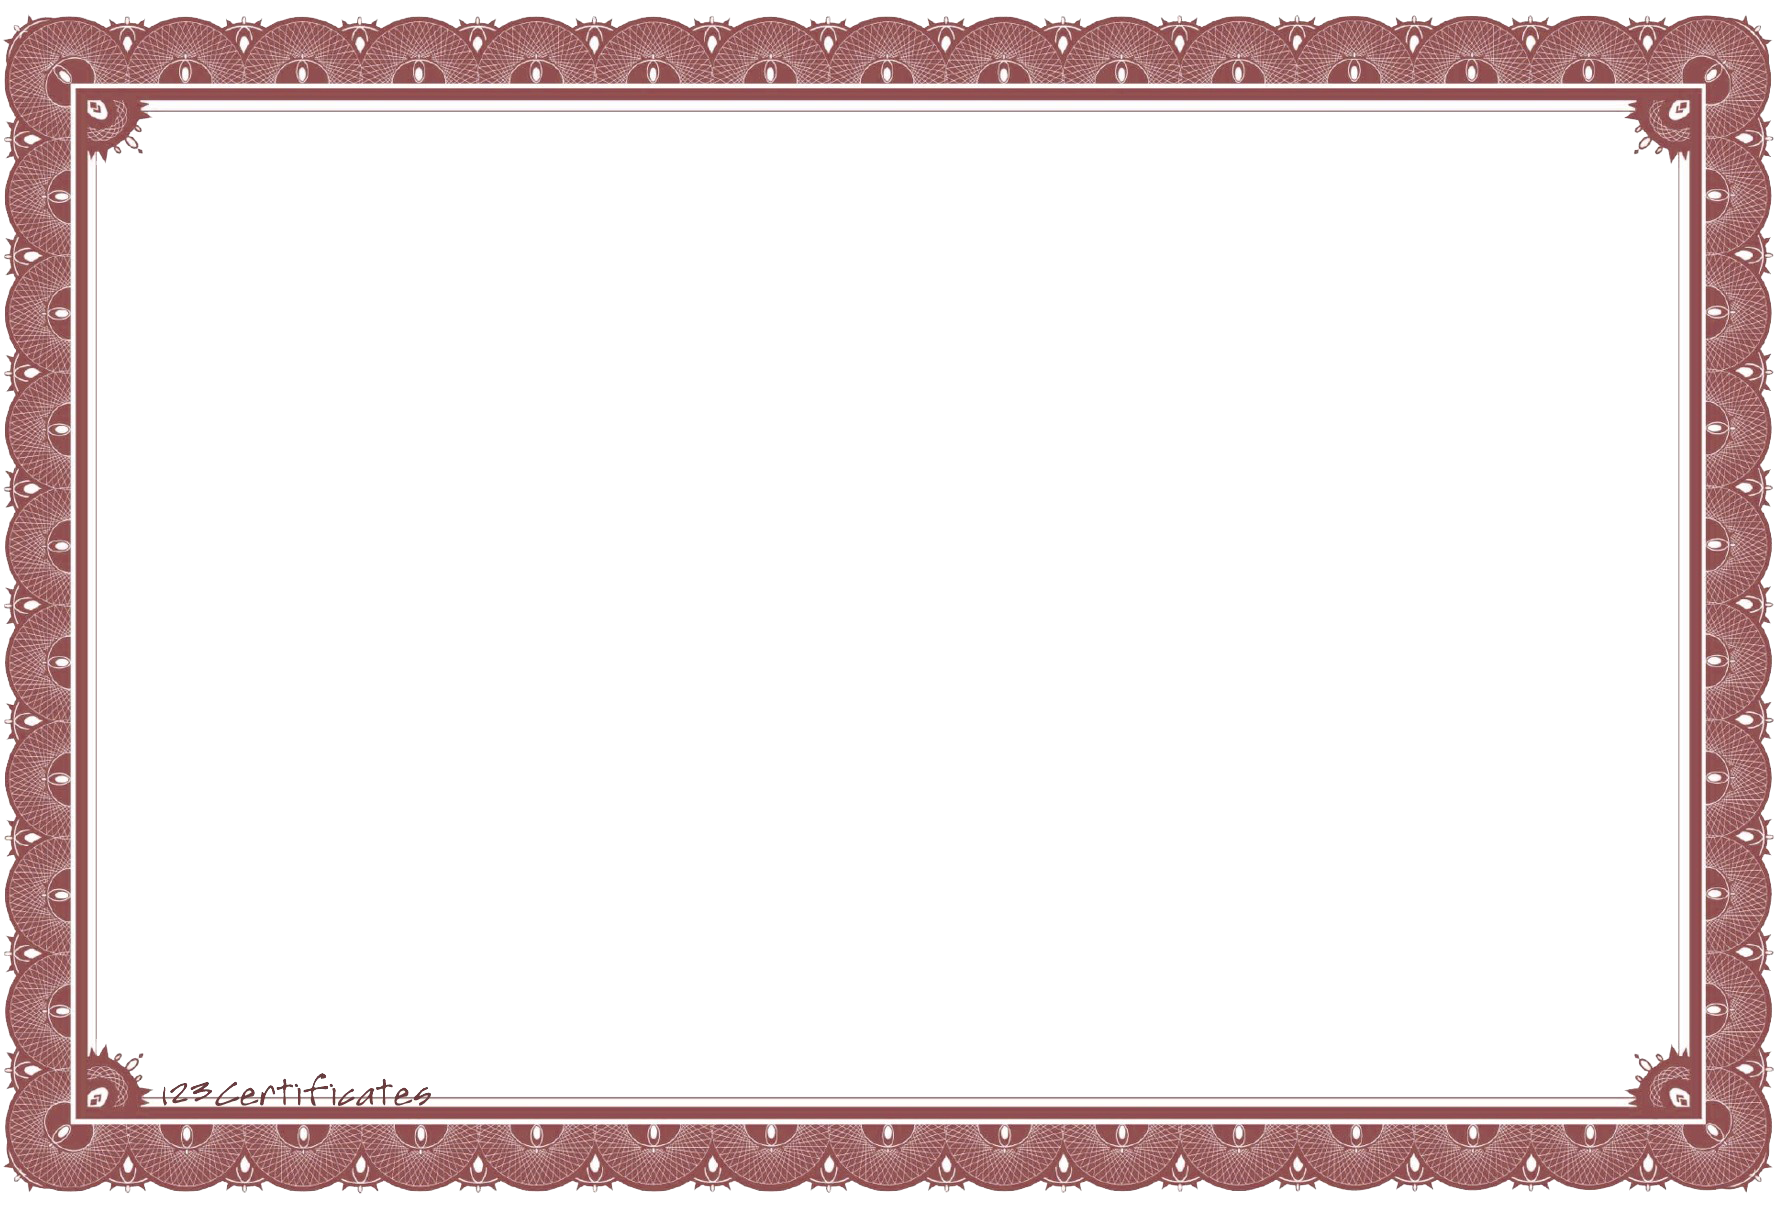 Certificate Template PNG Transparent Certificate Template.PNG Images.